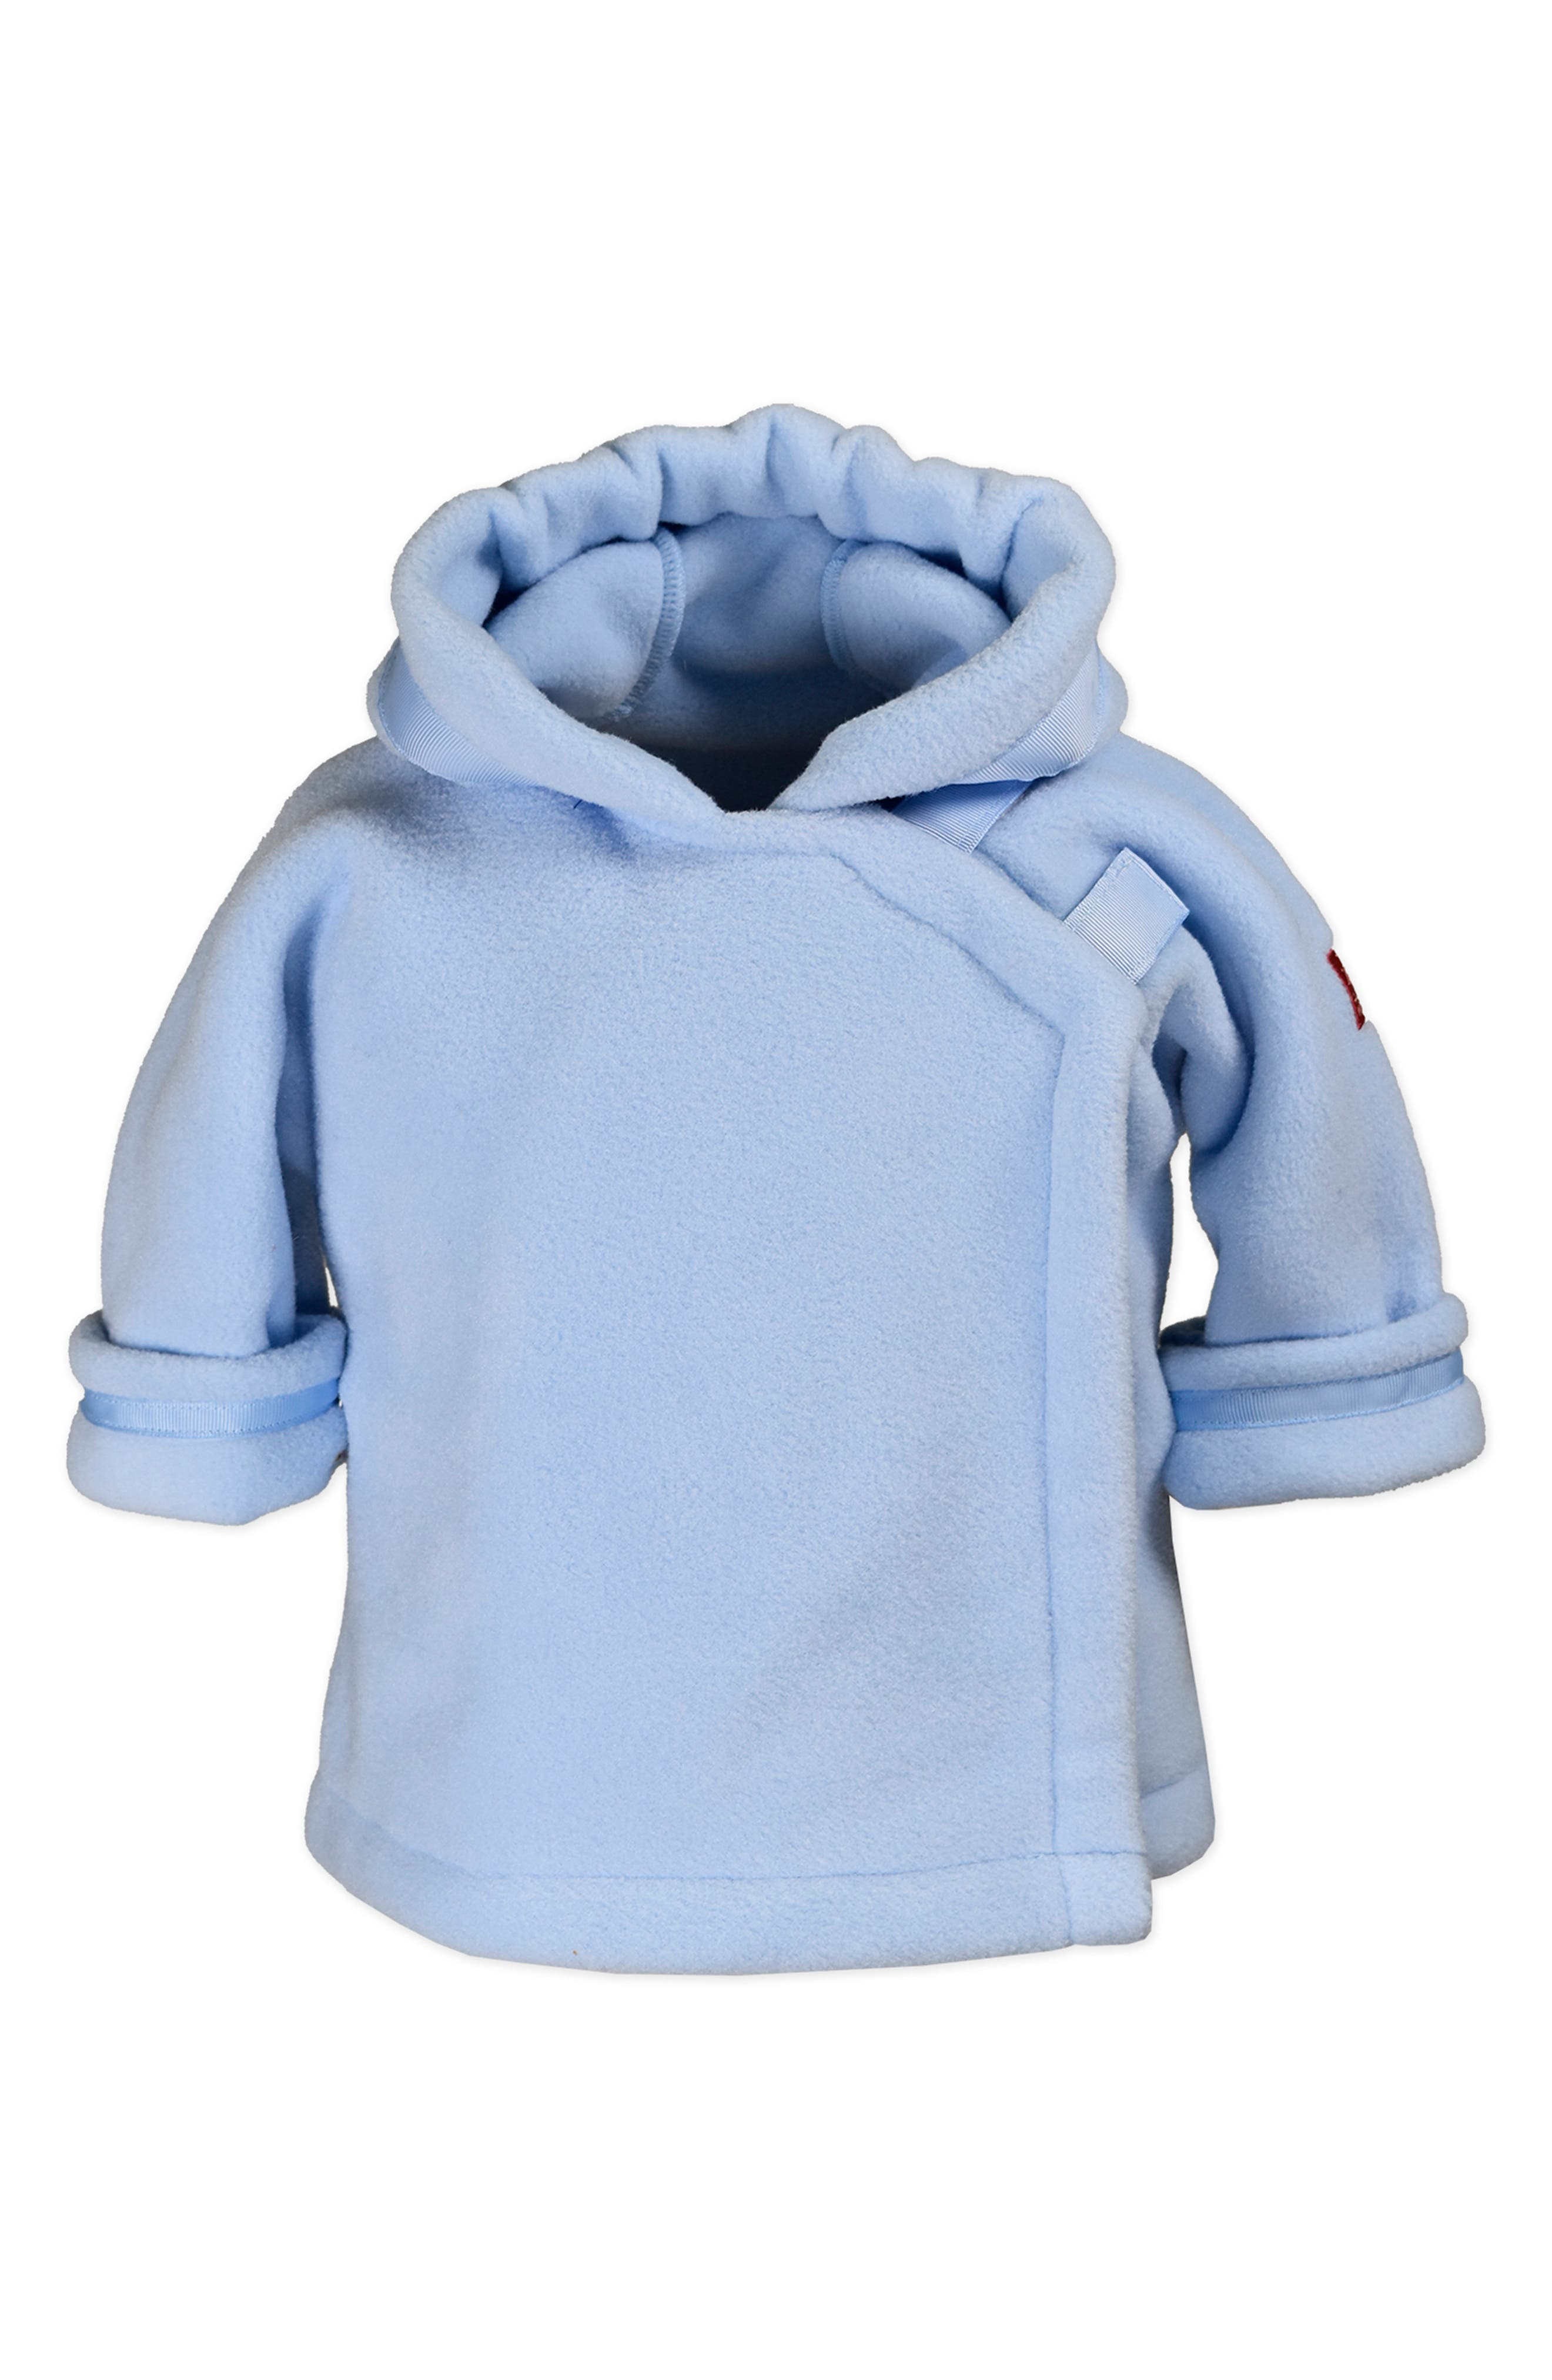 Warmplus Favorite Water Repellent Polartec<sup>®</sup> Fleece Jacket, Main, color, LIGHT BLUE